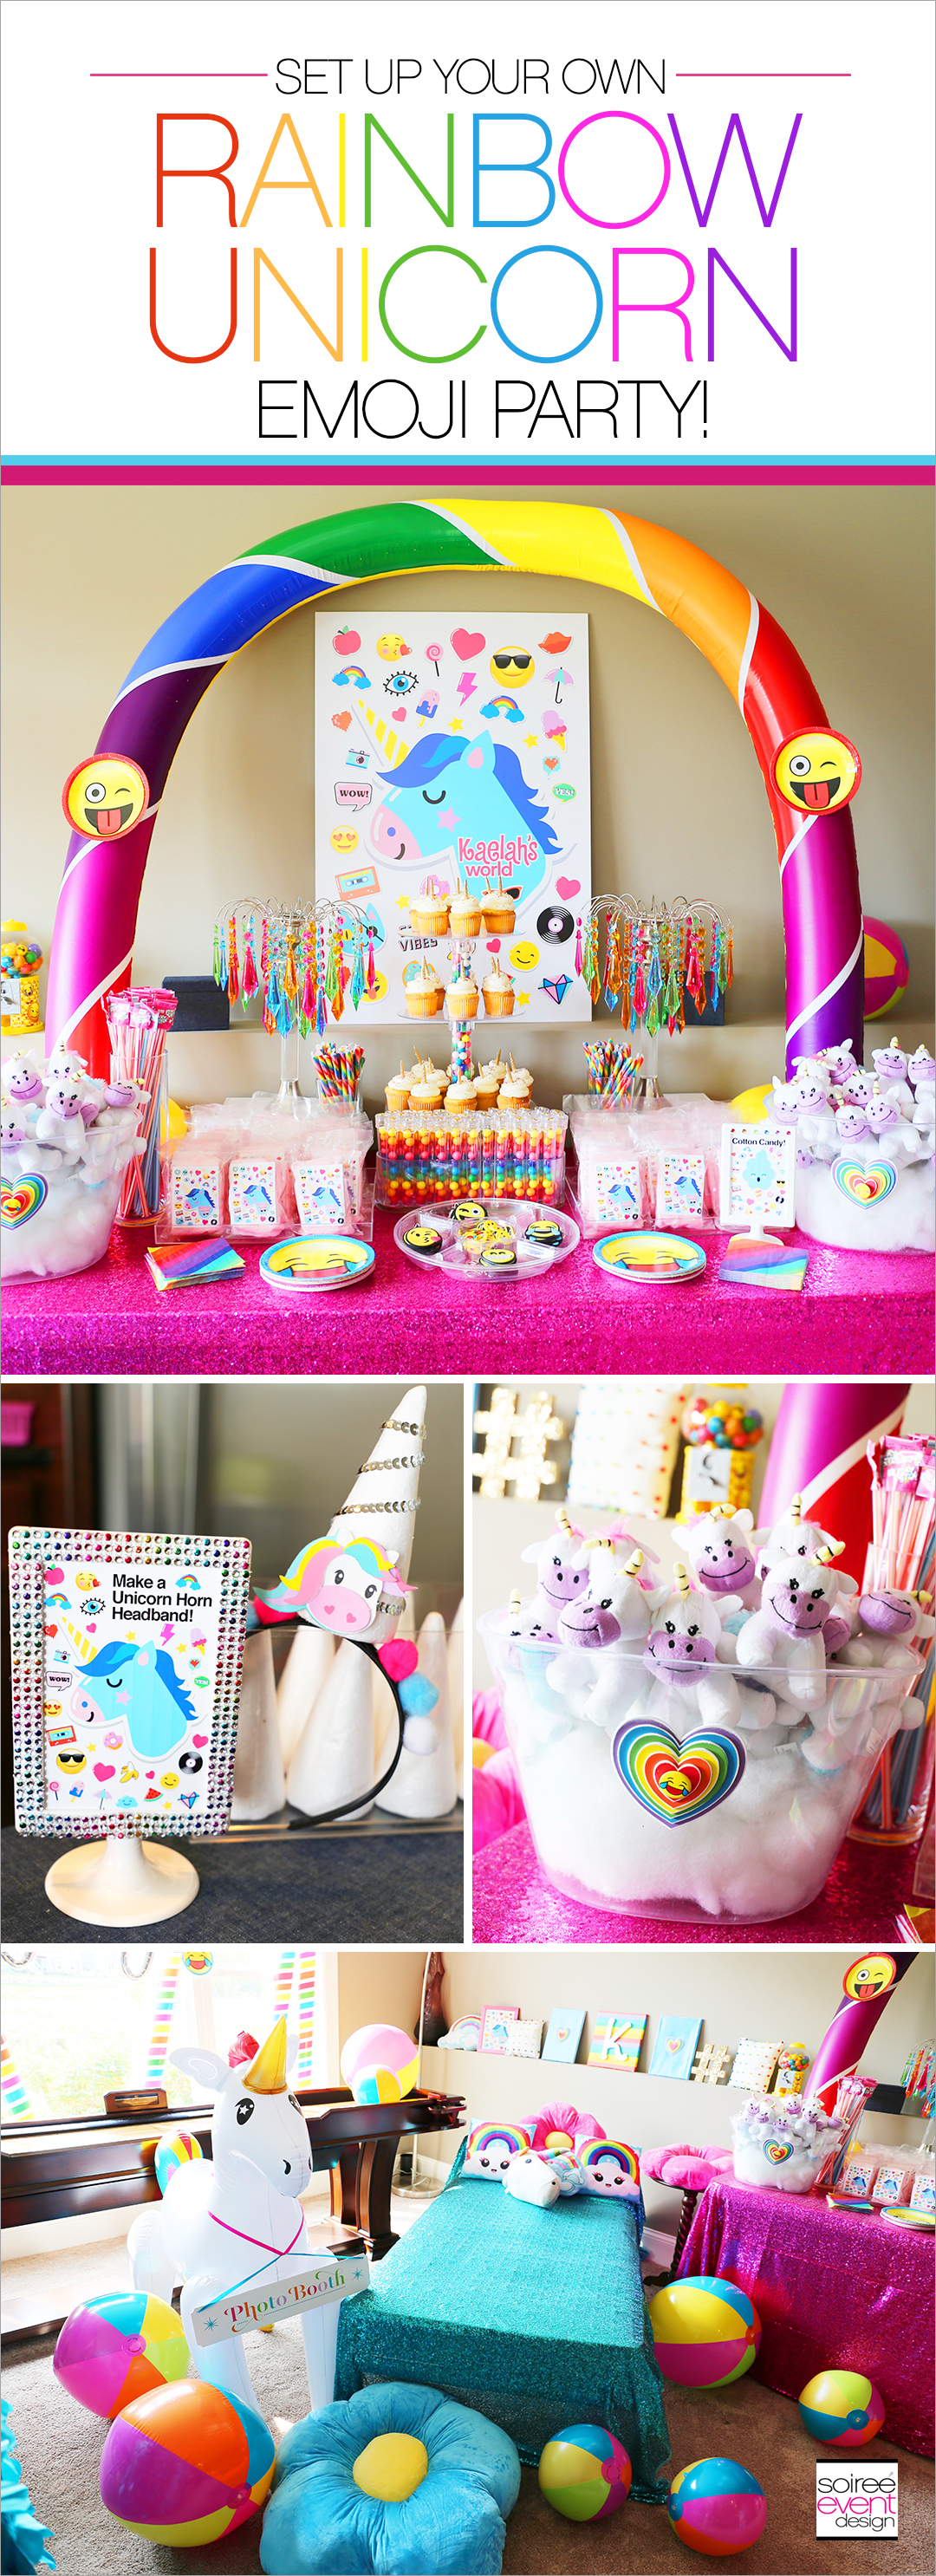 Rainbow Unicorn Emoji Party Ideas - Soiree Event Design